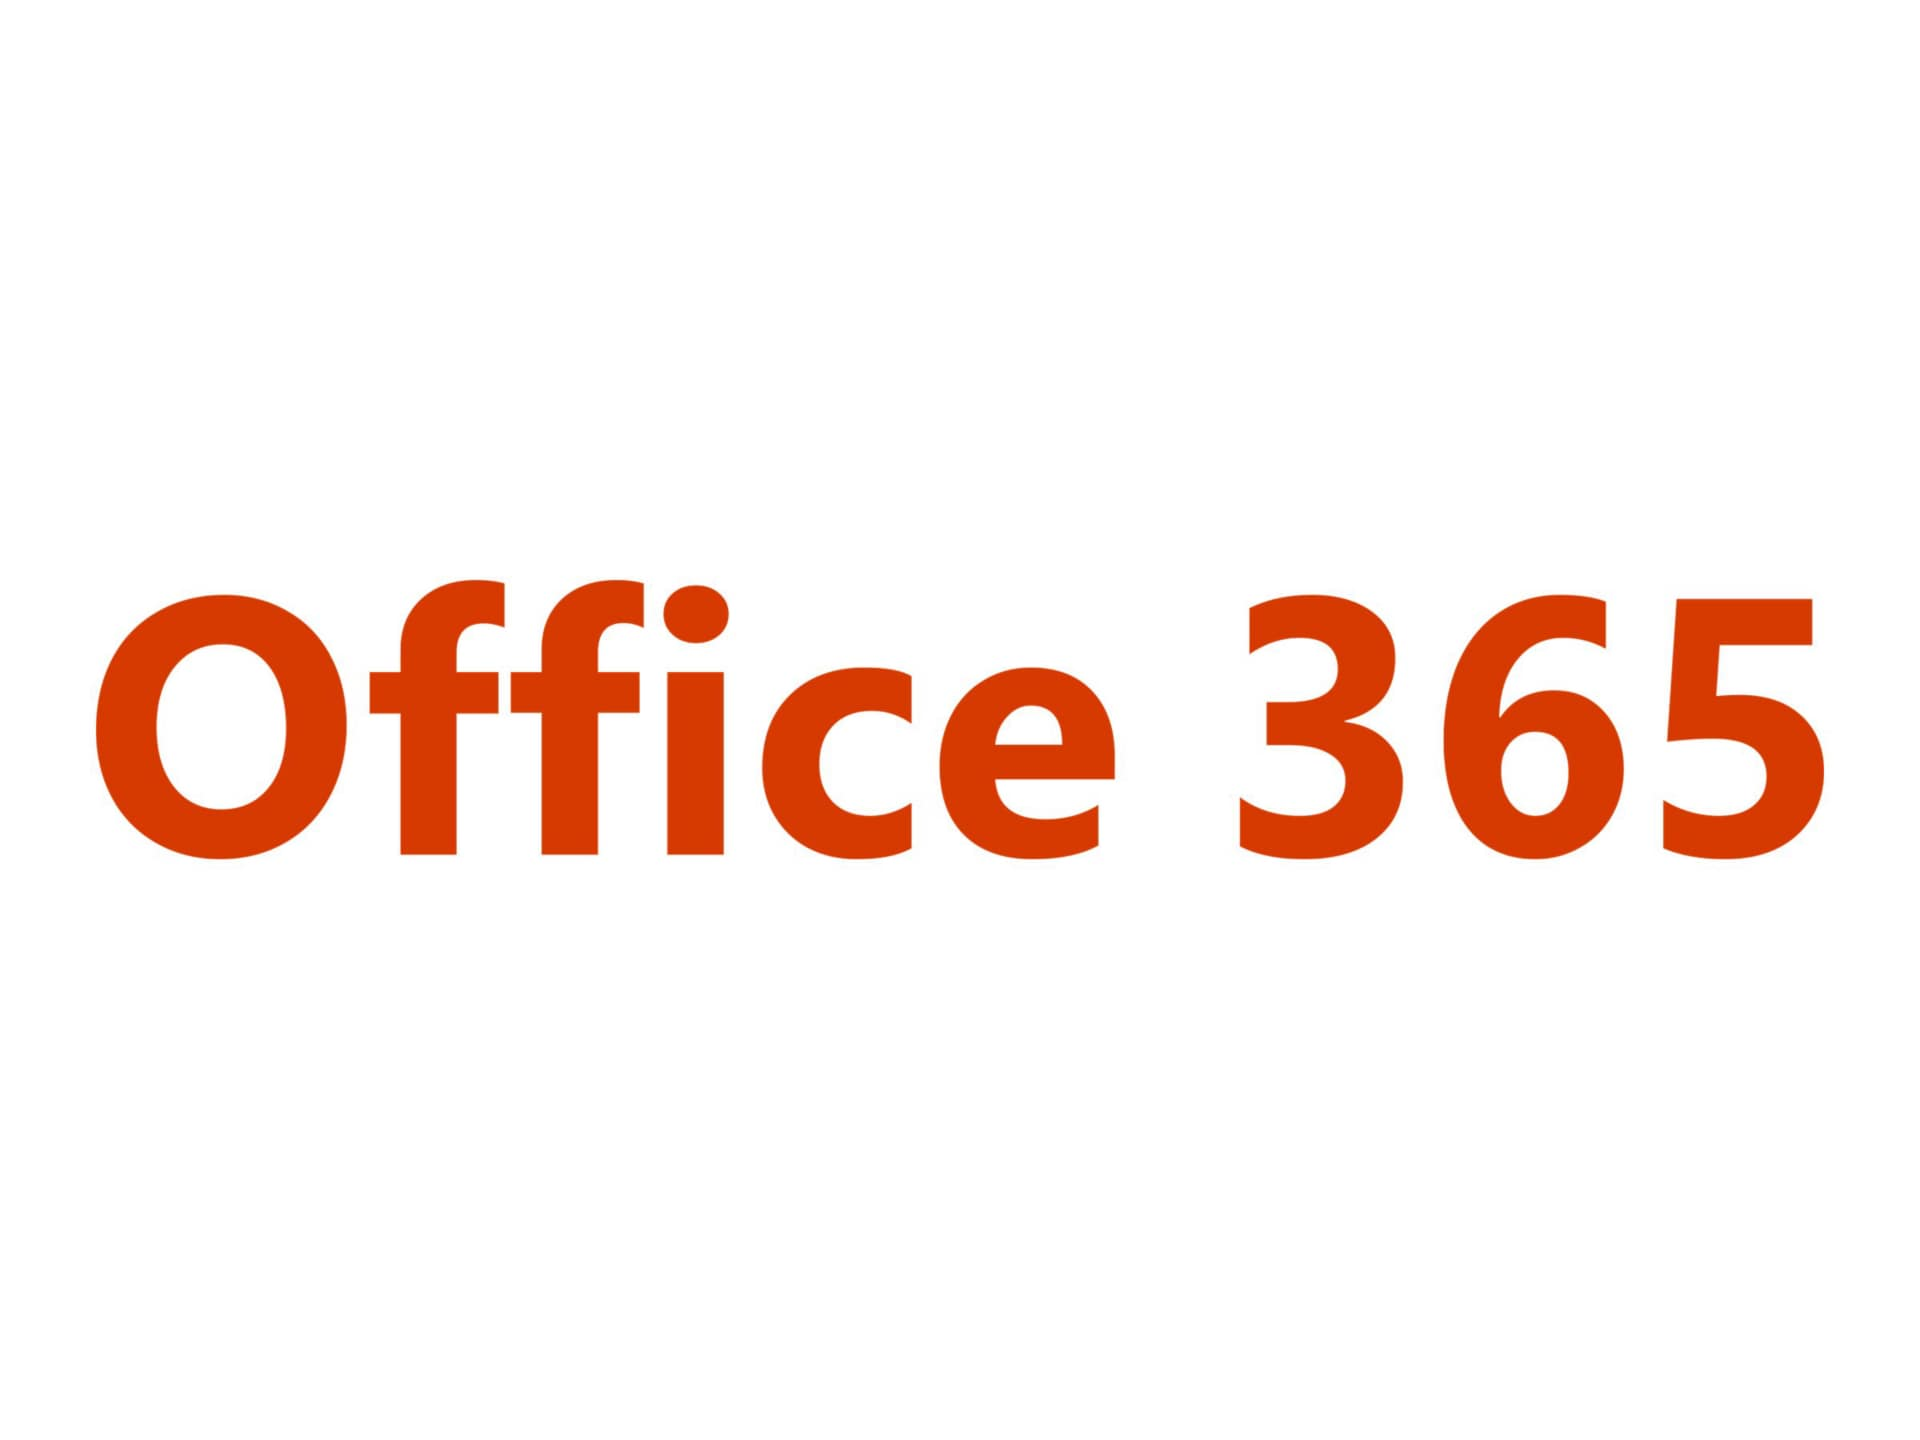 Mircrosoft Office 365 Microsoft Office 365 Proplus Subscription License 1 Month 1 User